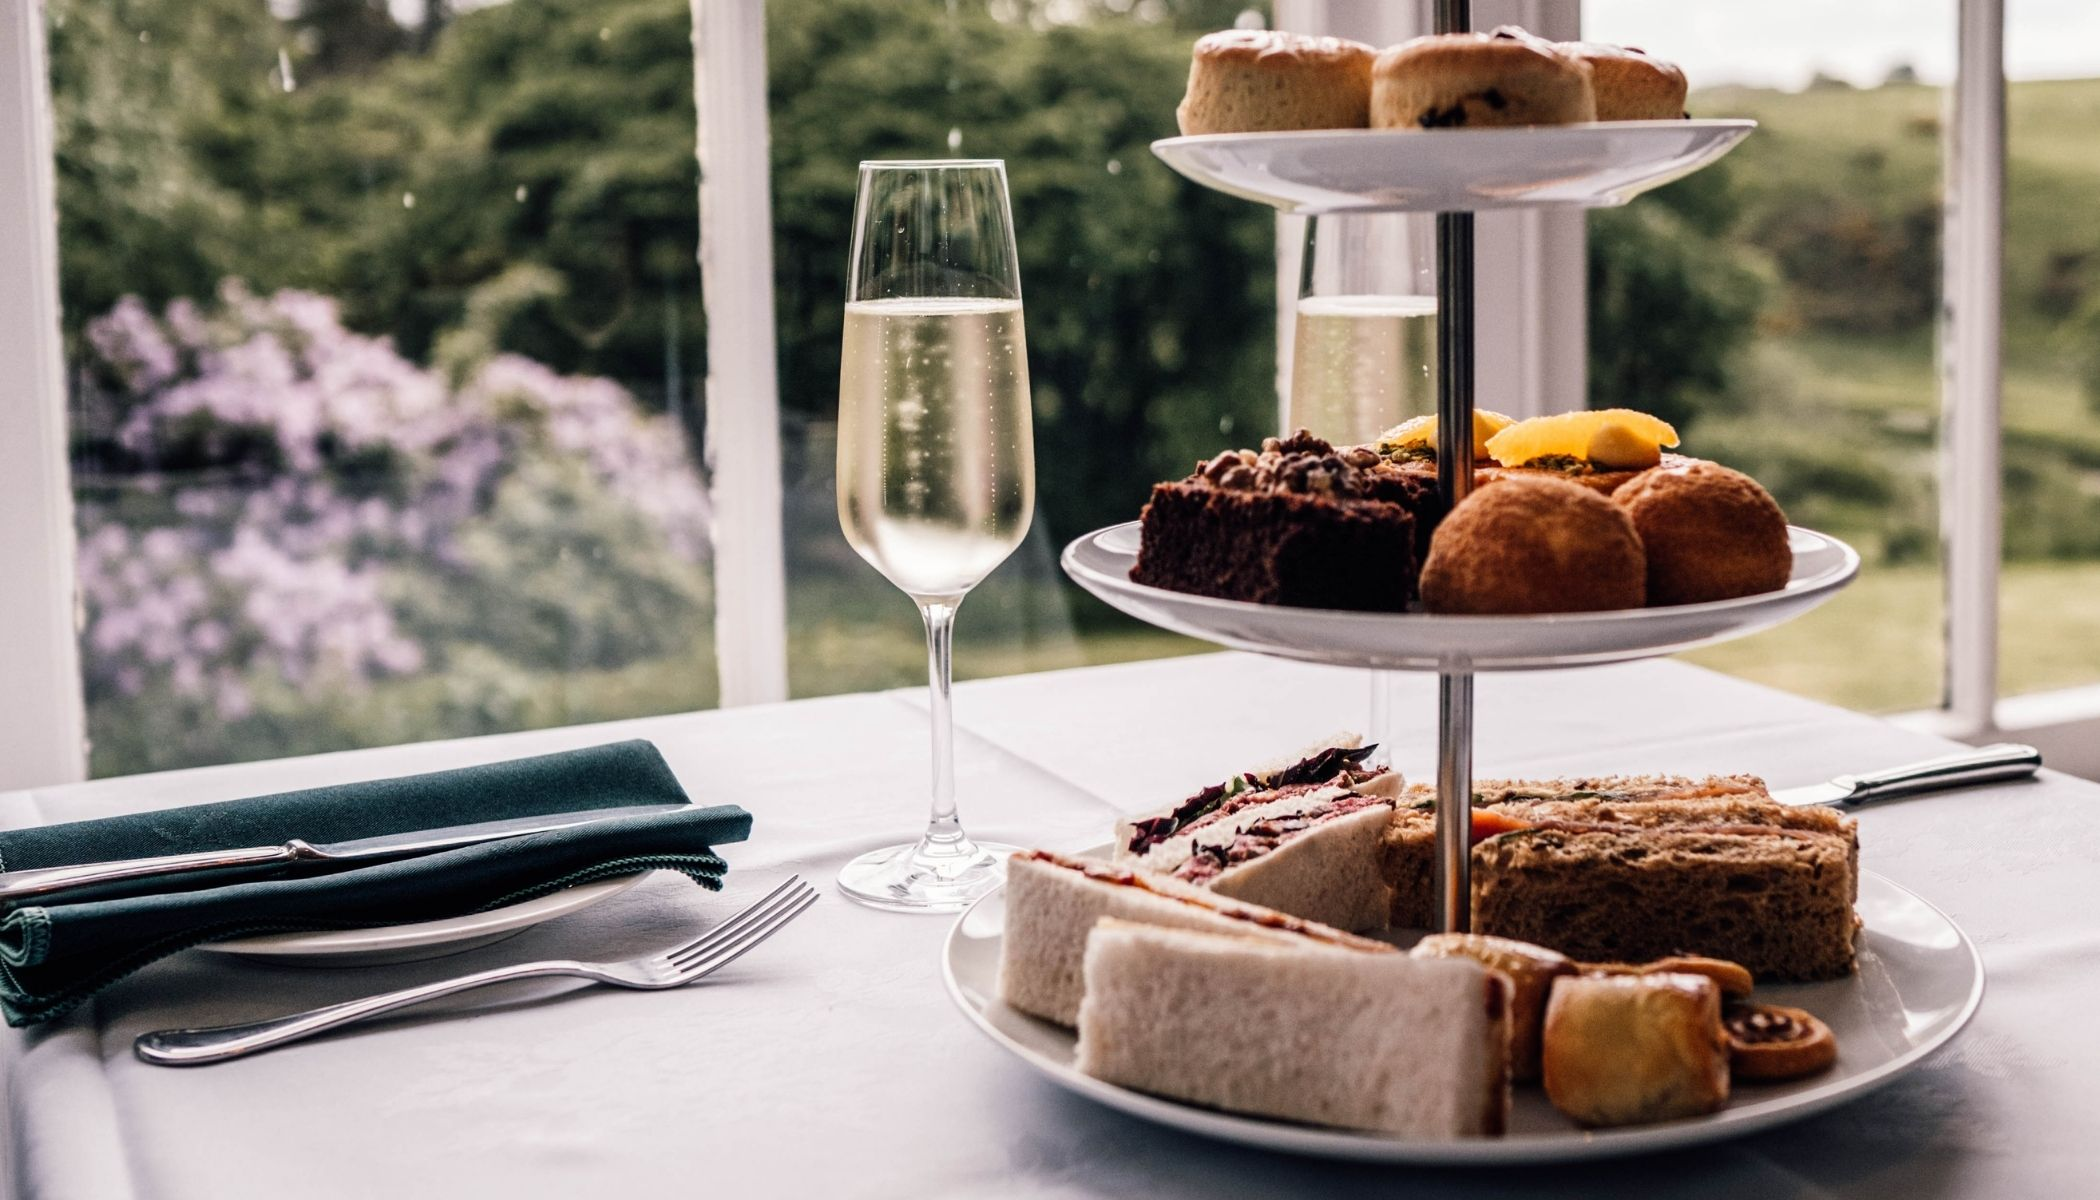 Afternoon tea at Forss House Hotel